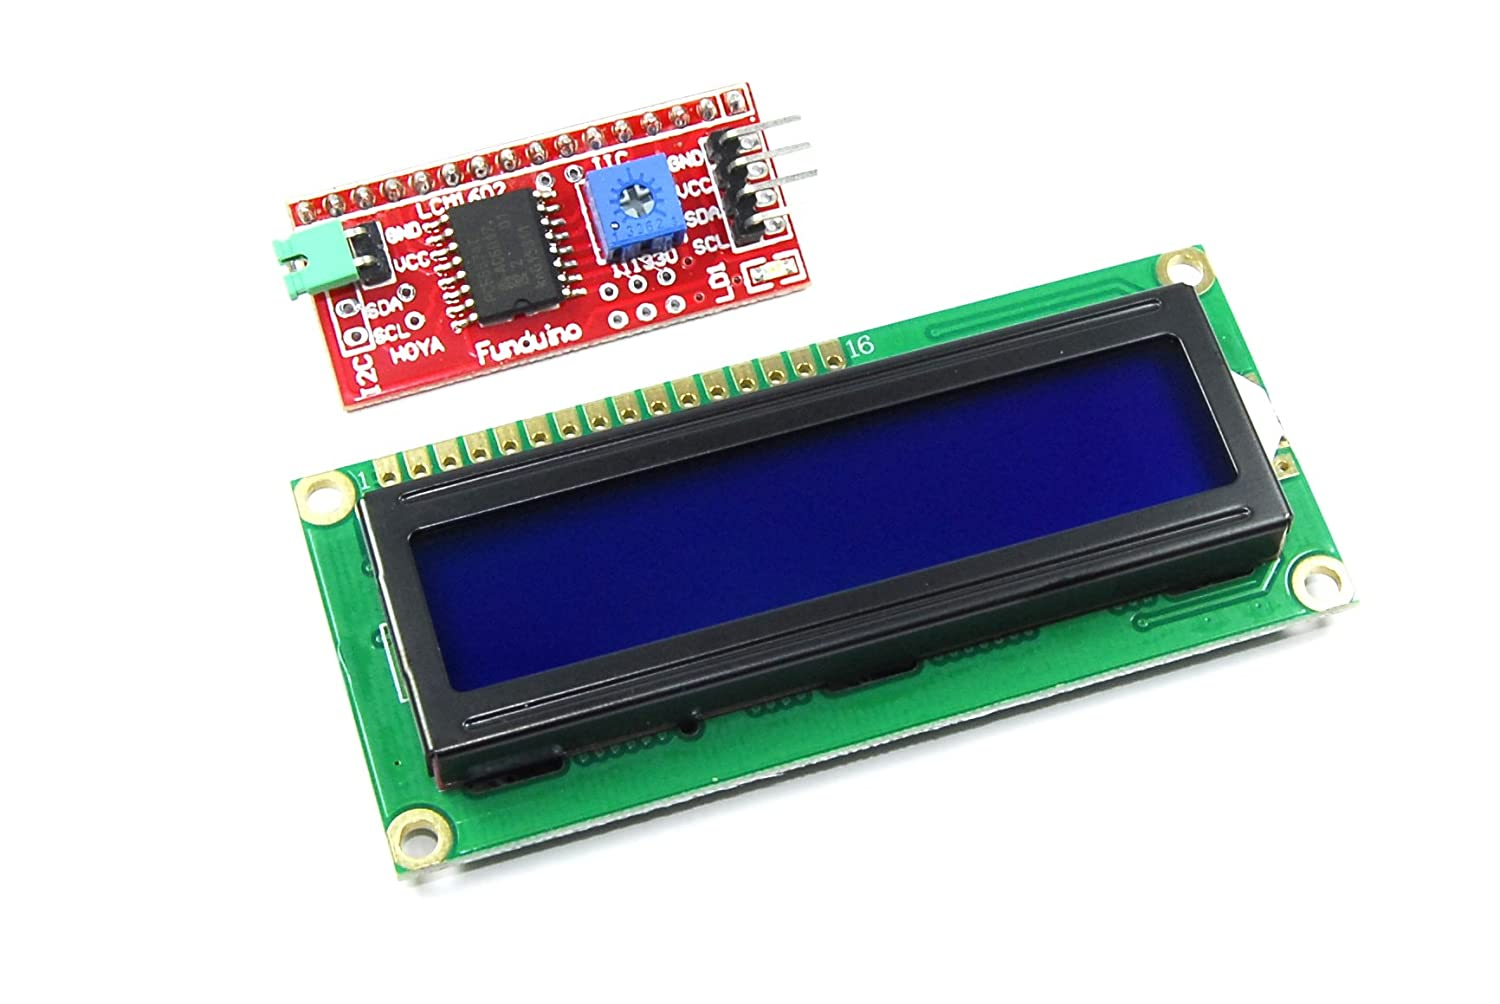 16x2 Blue LCD with Funduino I2C Interface MB-063 1602